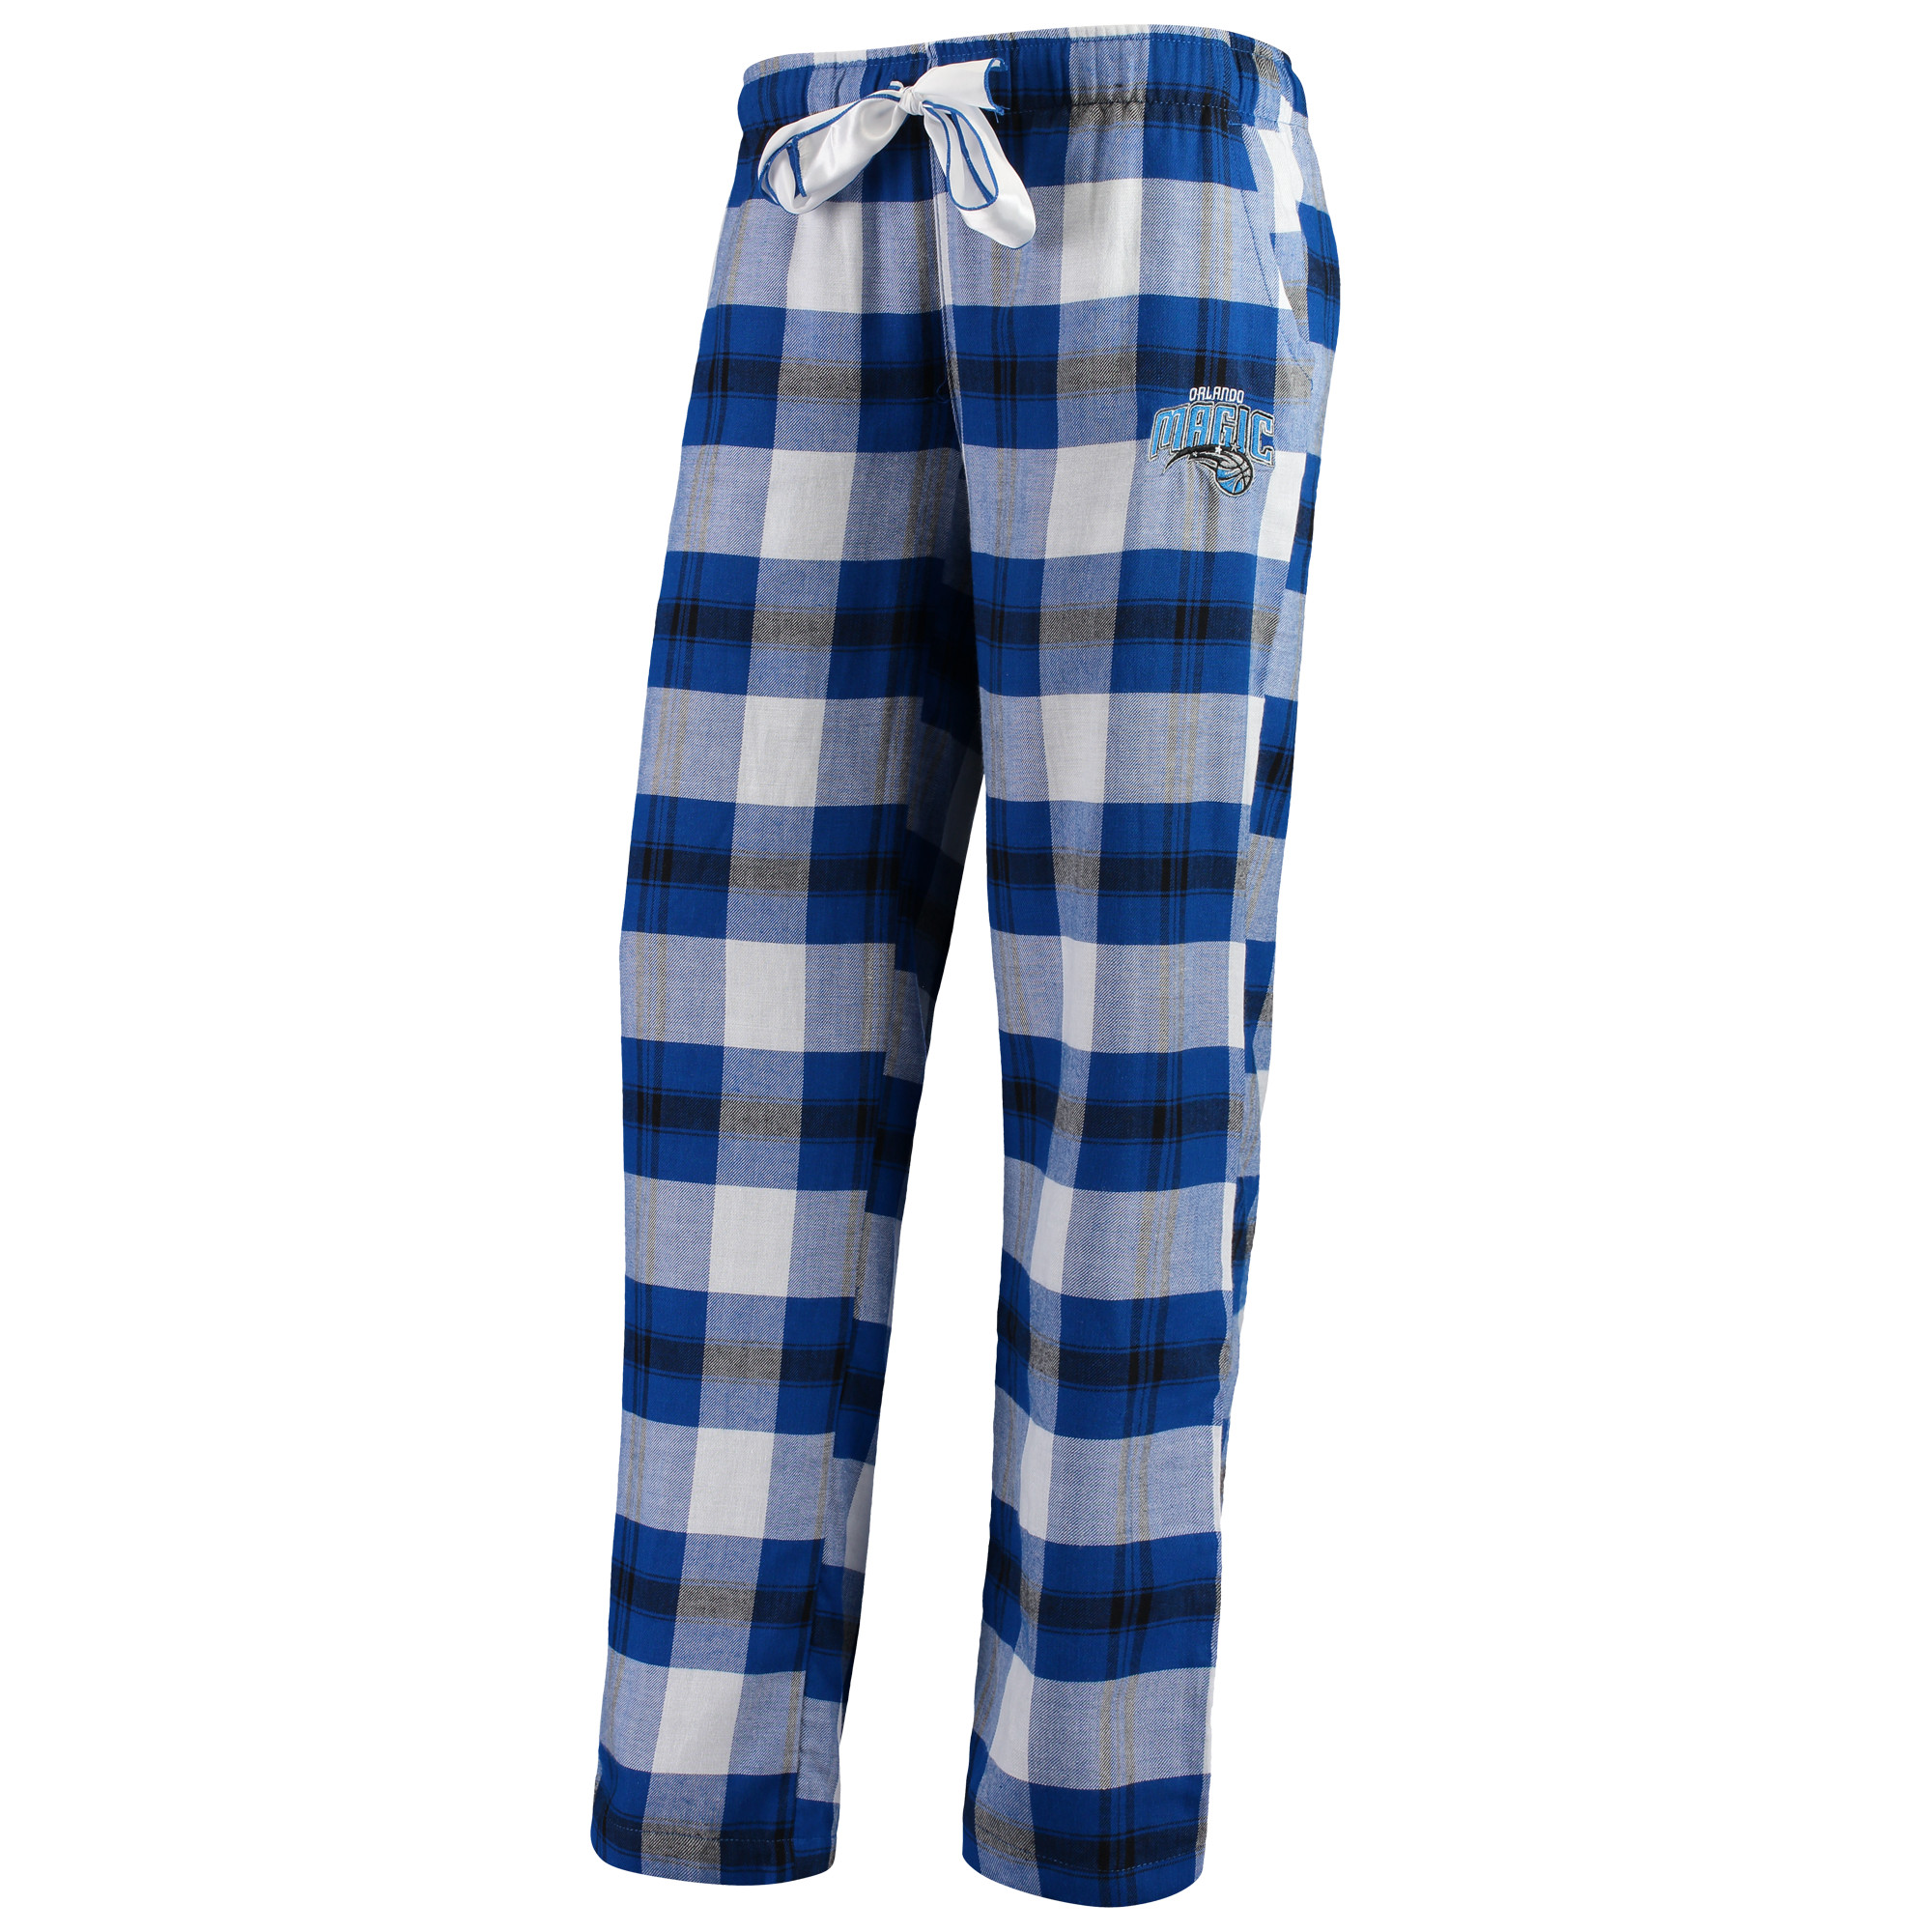 Orlando Magic Women's Flannel Pajamas Plaid PJ Bottoms